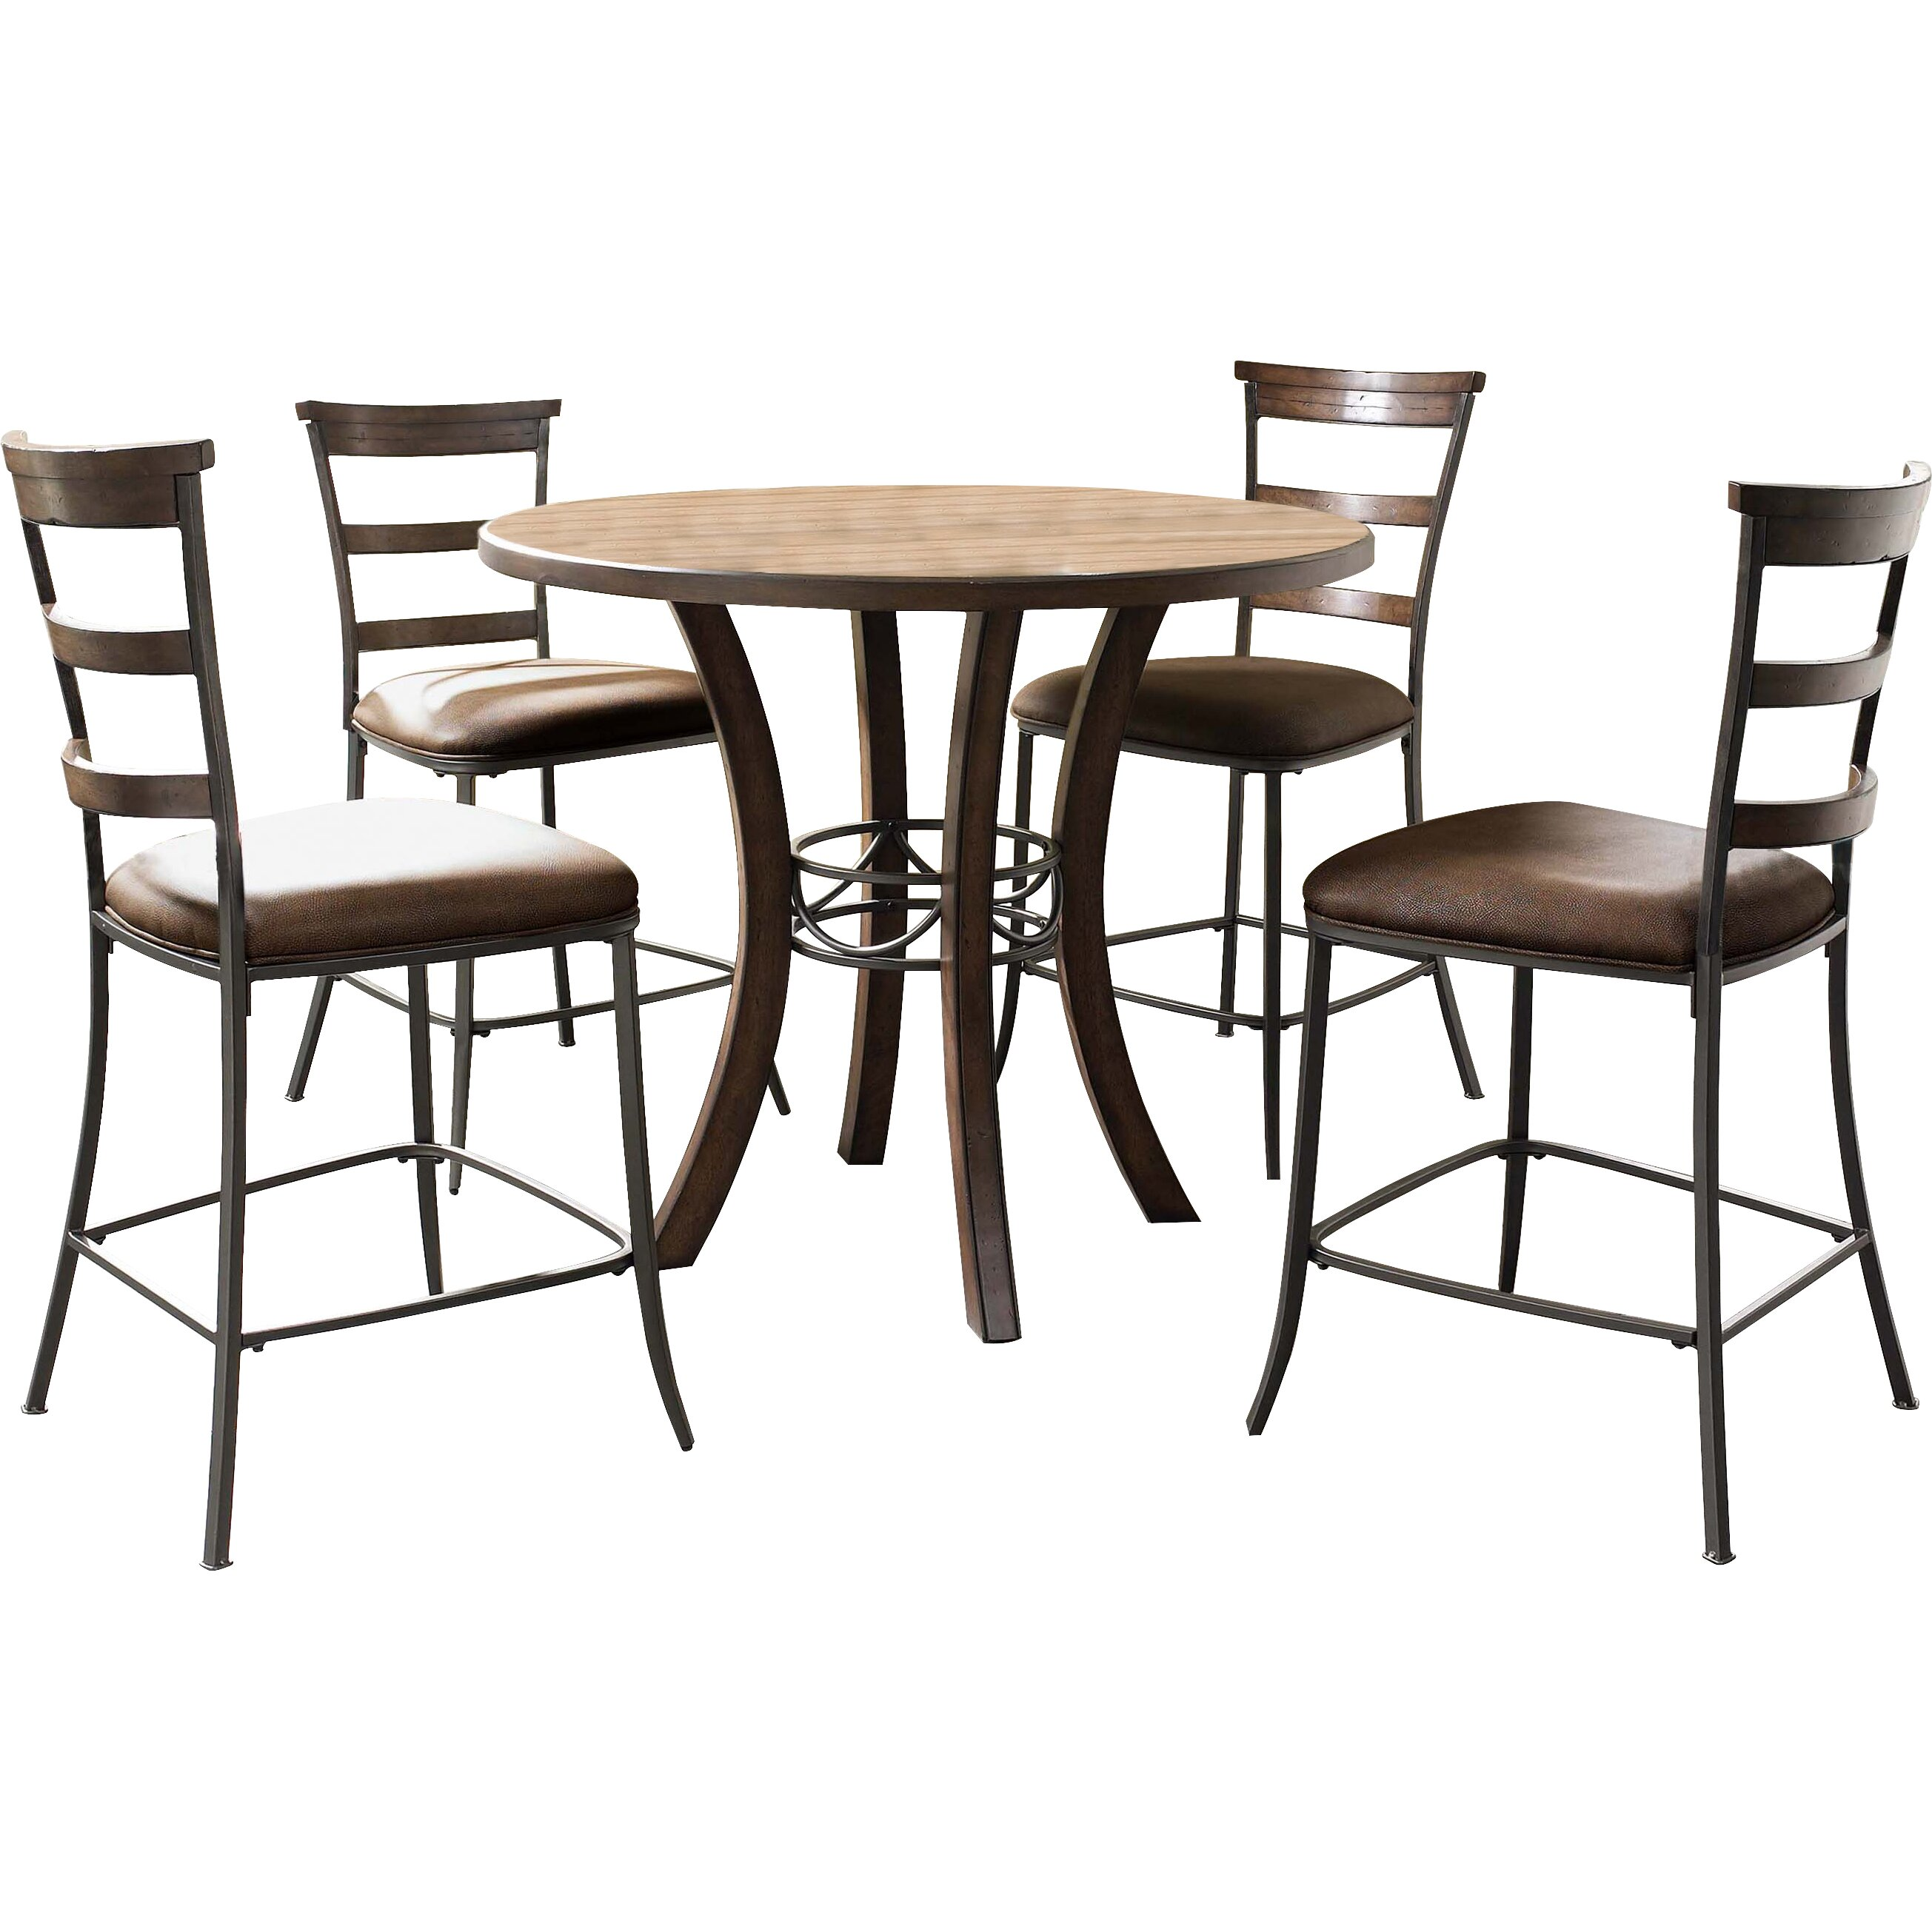 Hillsdale cameron 5 piece counter height dining set for 5 piece dining set